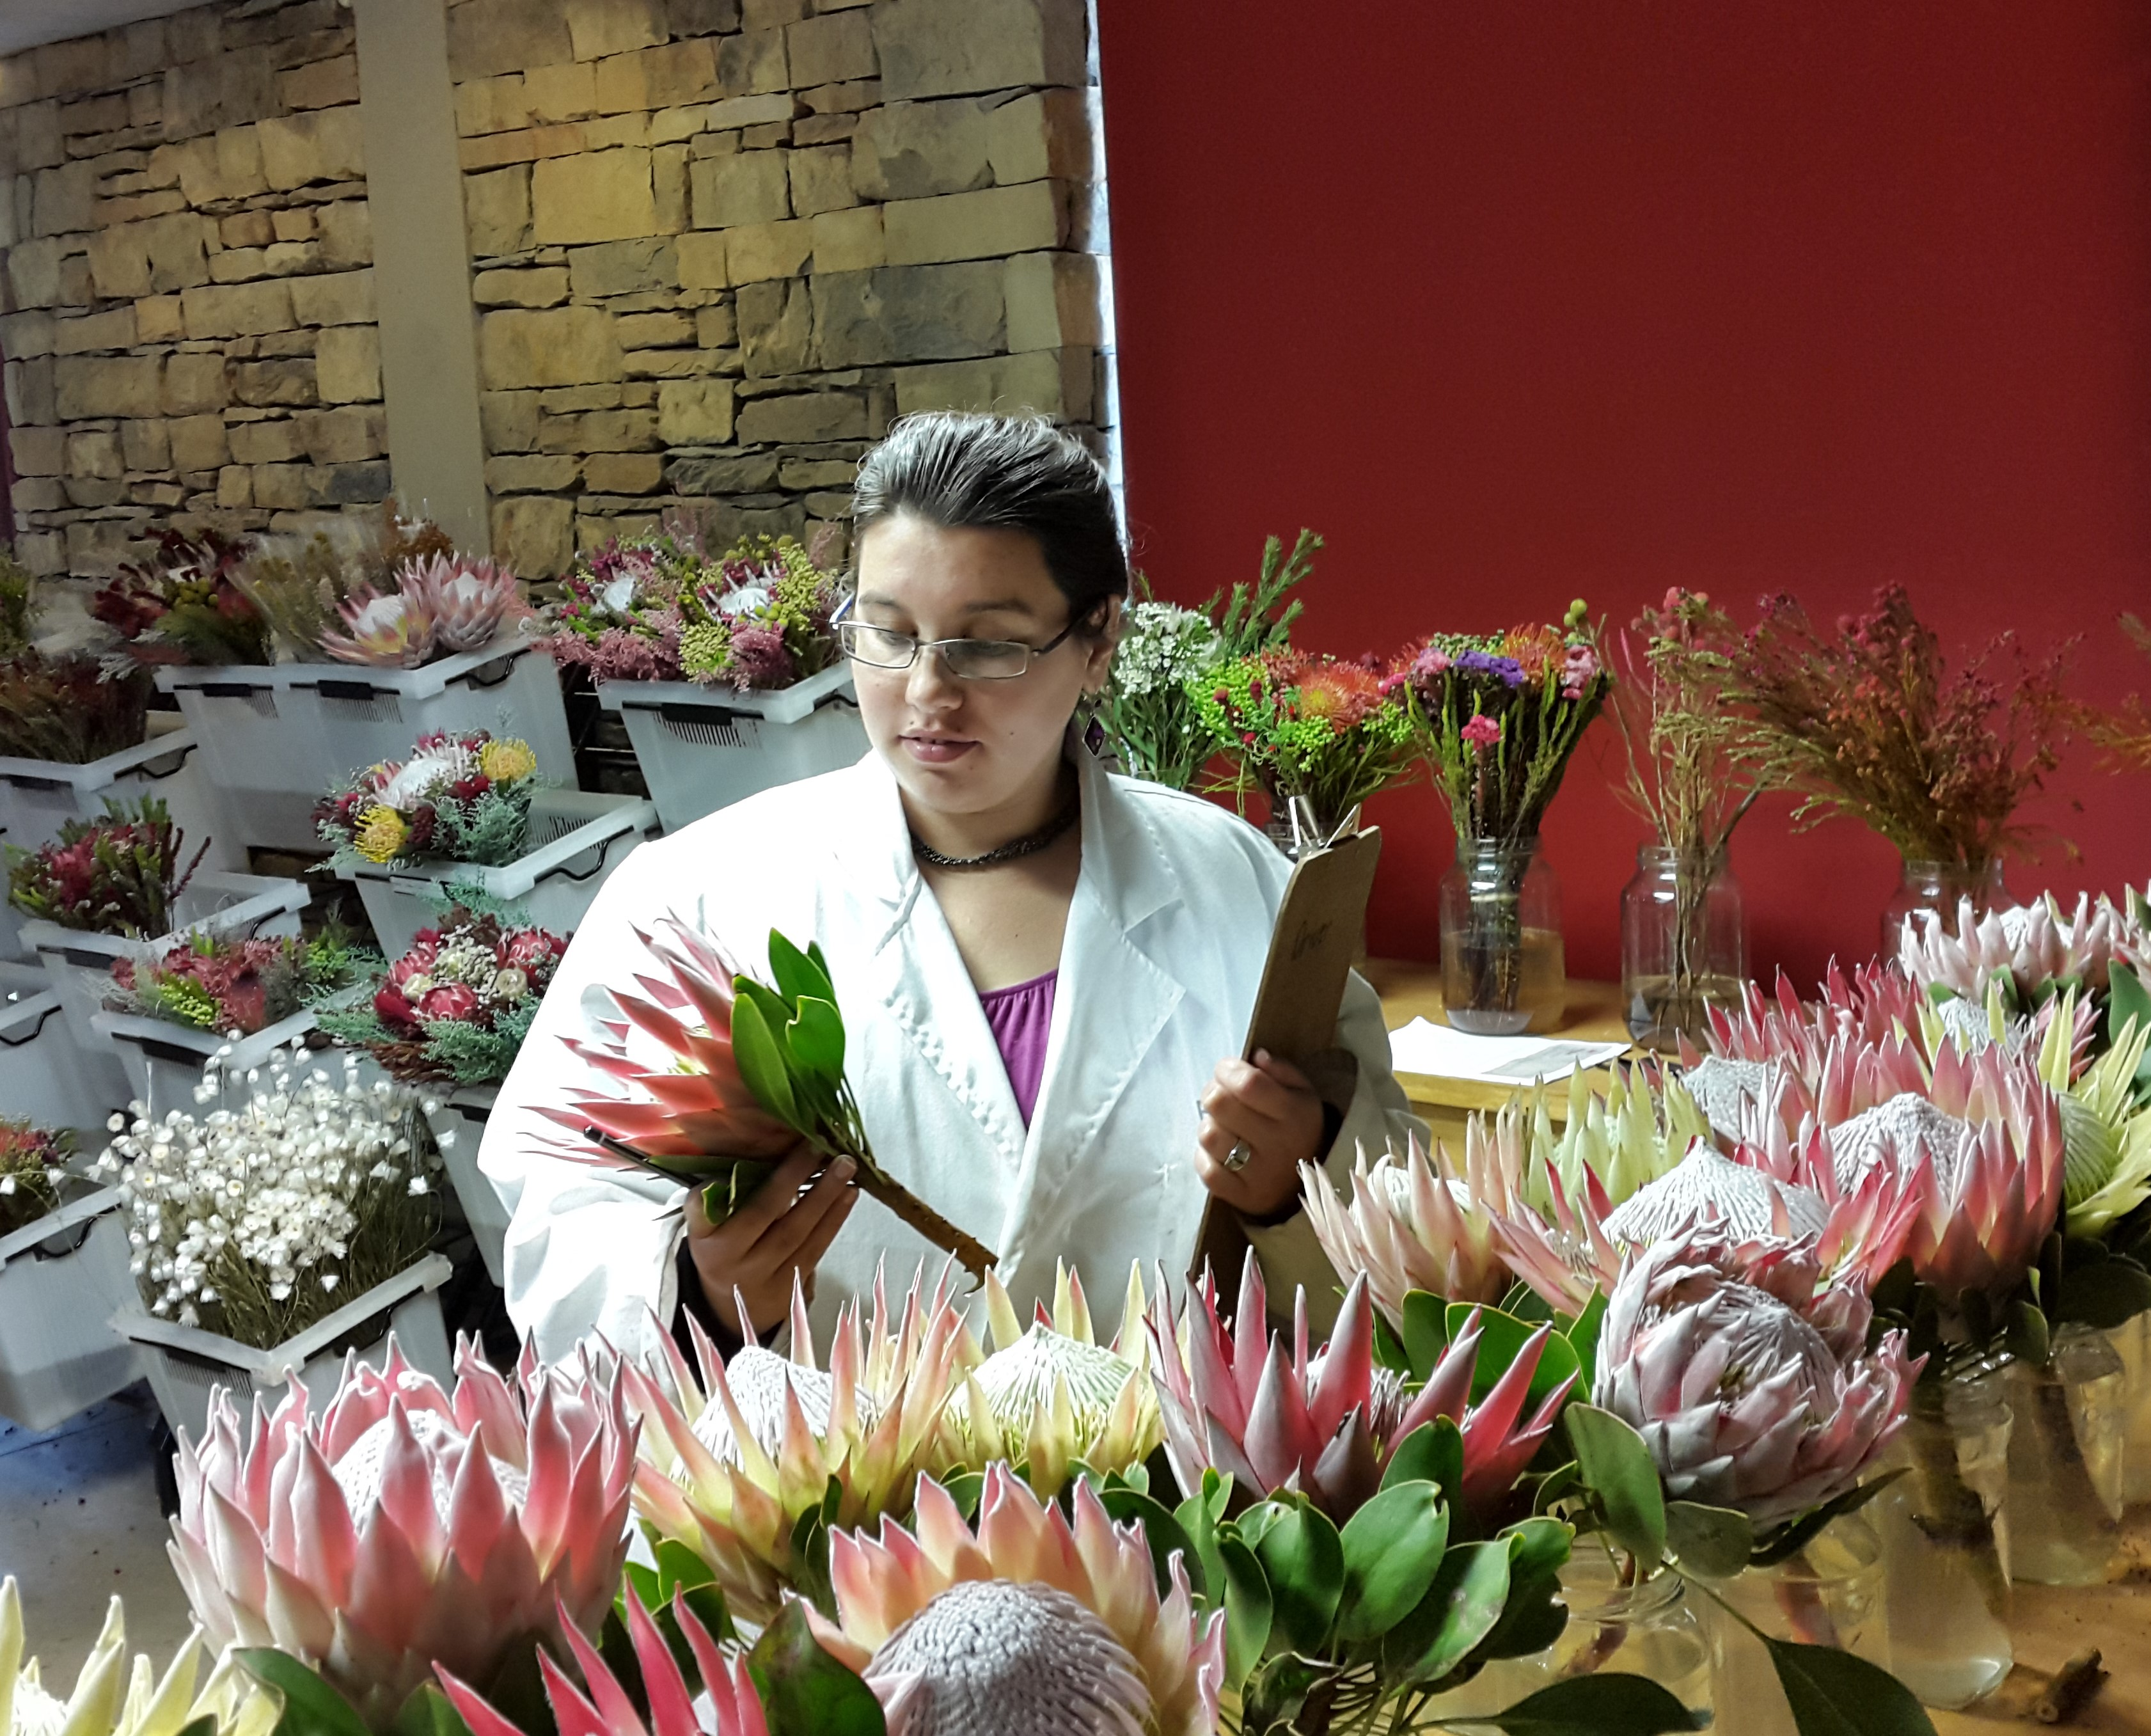 Proteas turn blotchy when they have sugar cravings in the mornings » SciBraai